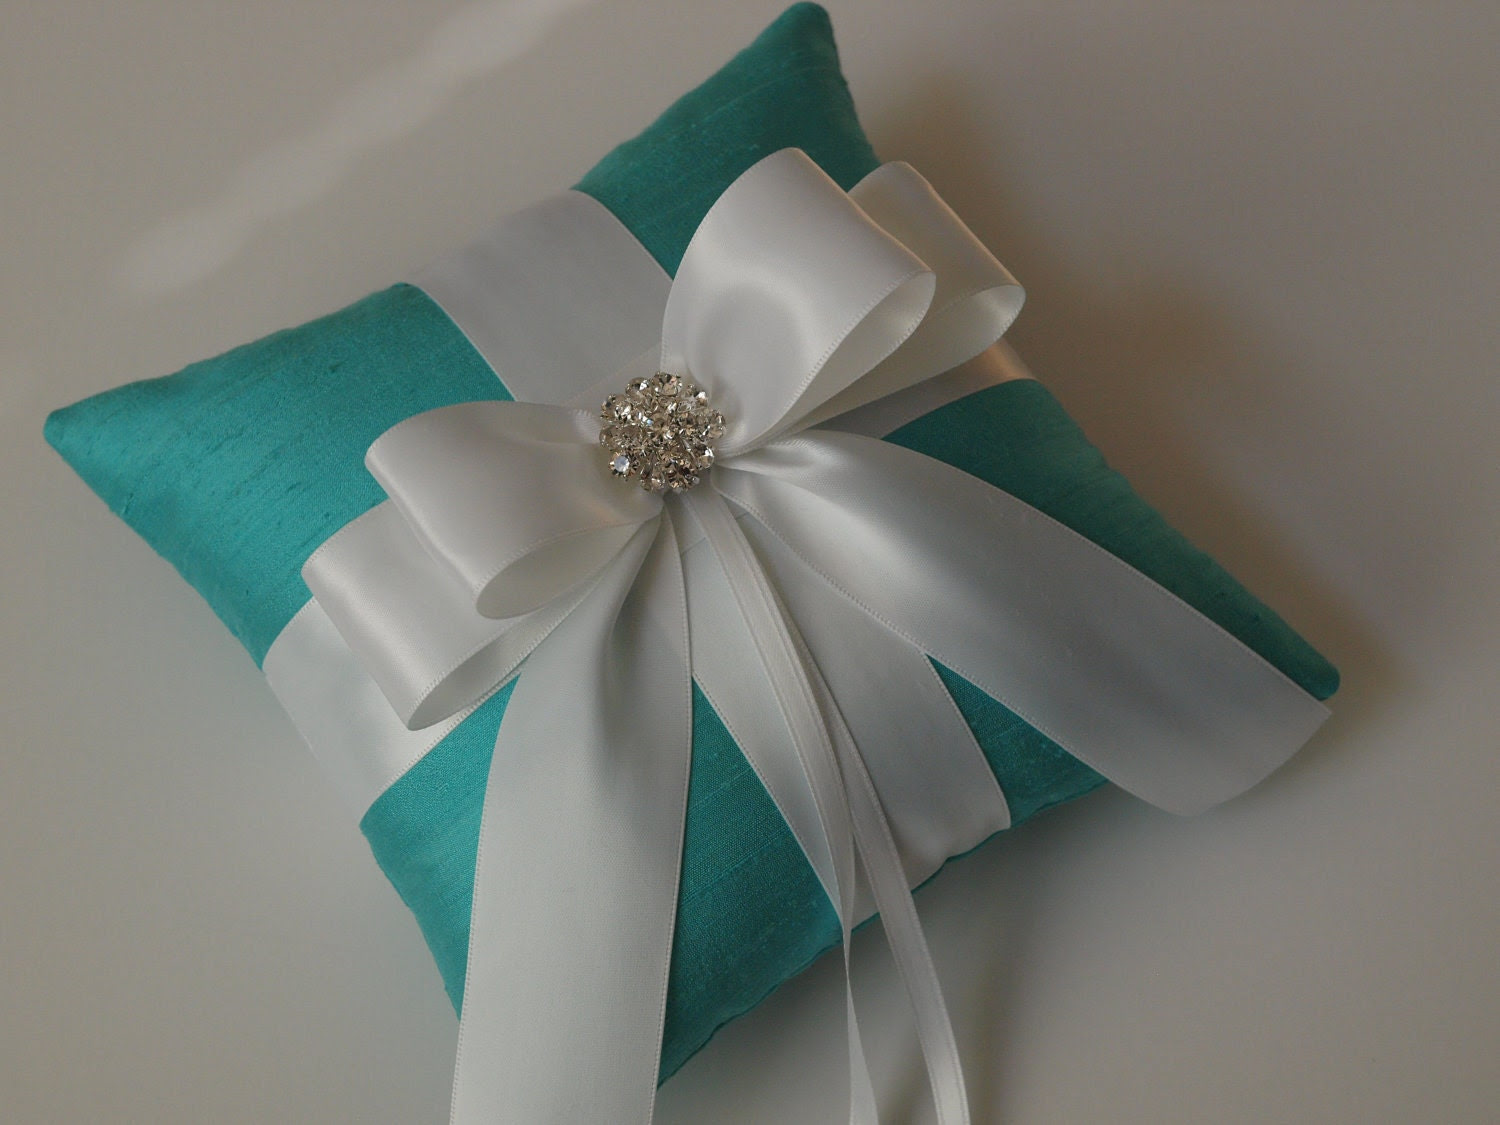 Tiffany Blue Ring Pillow with White Bow and Rhinestones -Helen